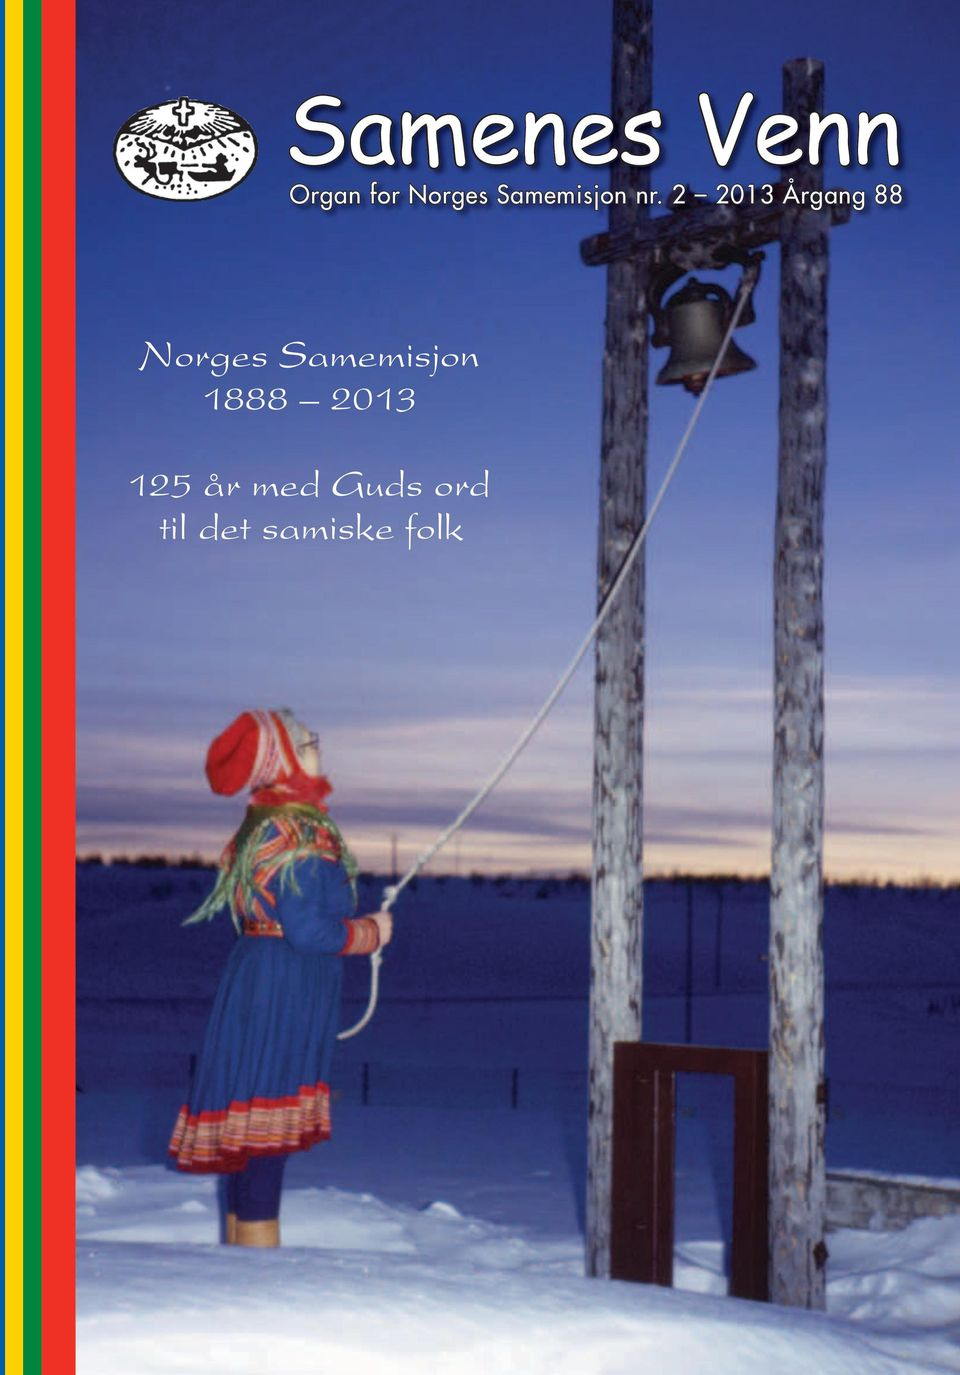 2 2013 Årgang 88 Norges